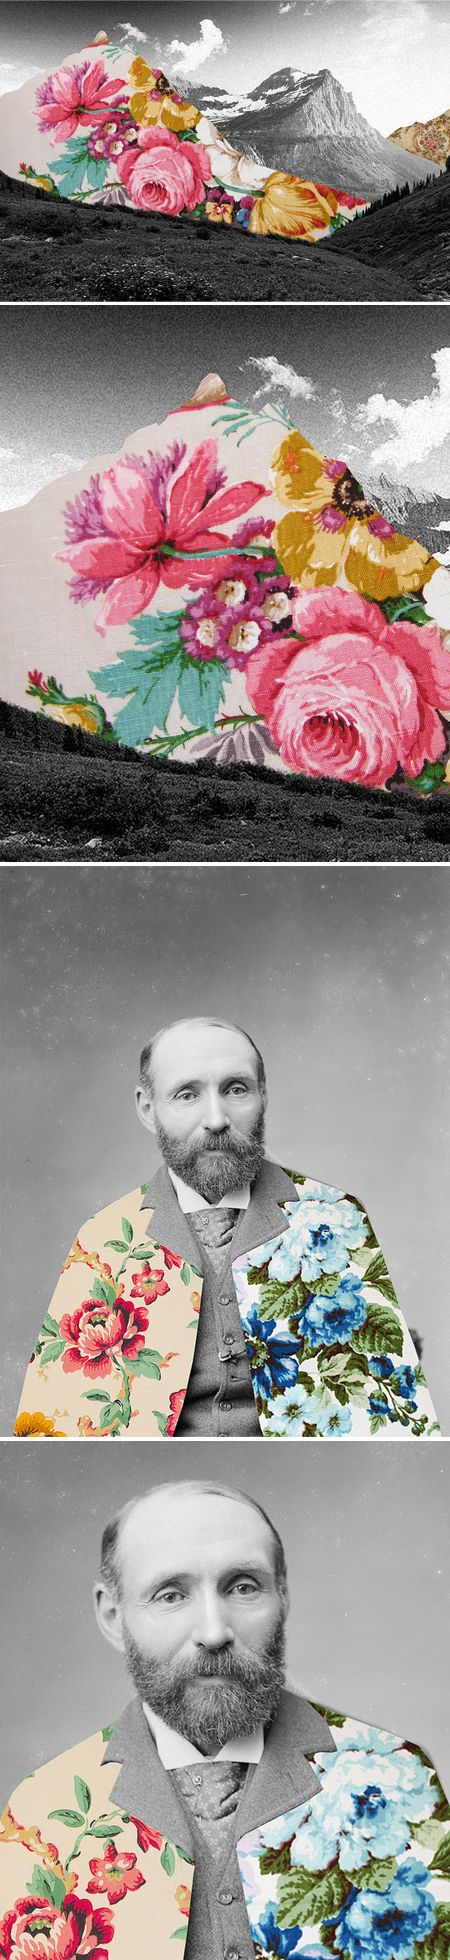 Guy Catling... How a little floral pattern can soften an image